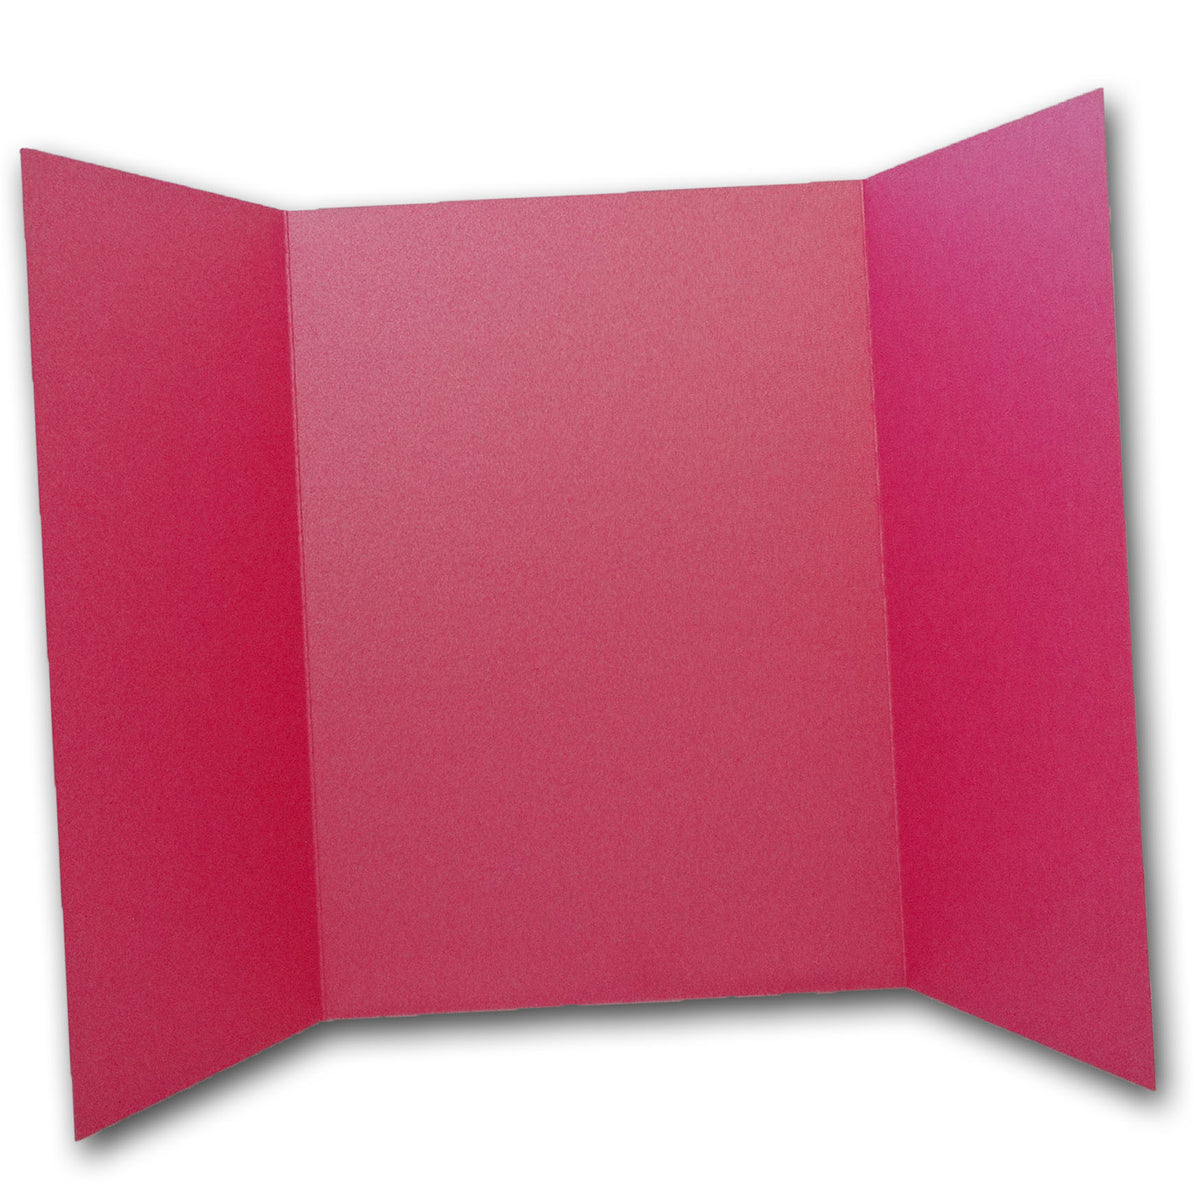 Shimmery Bright Pink 5x7 Gatefold Discount Card Stock DIY Invitations